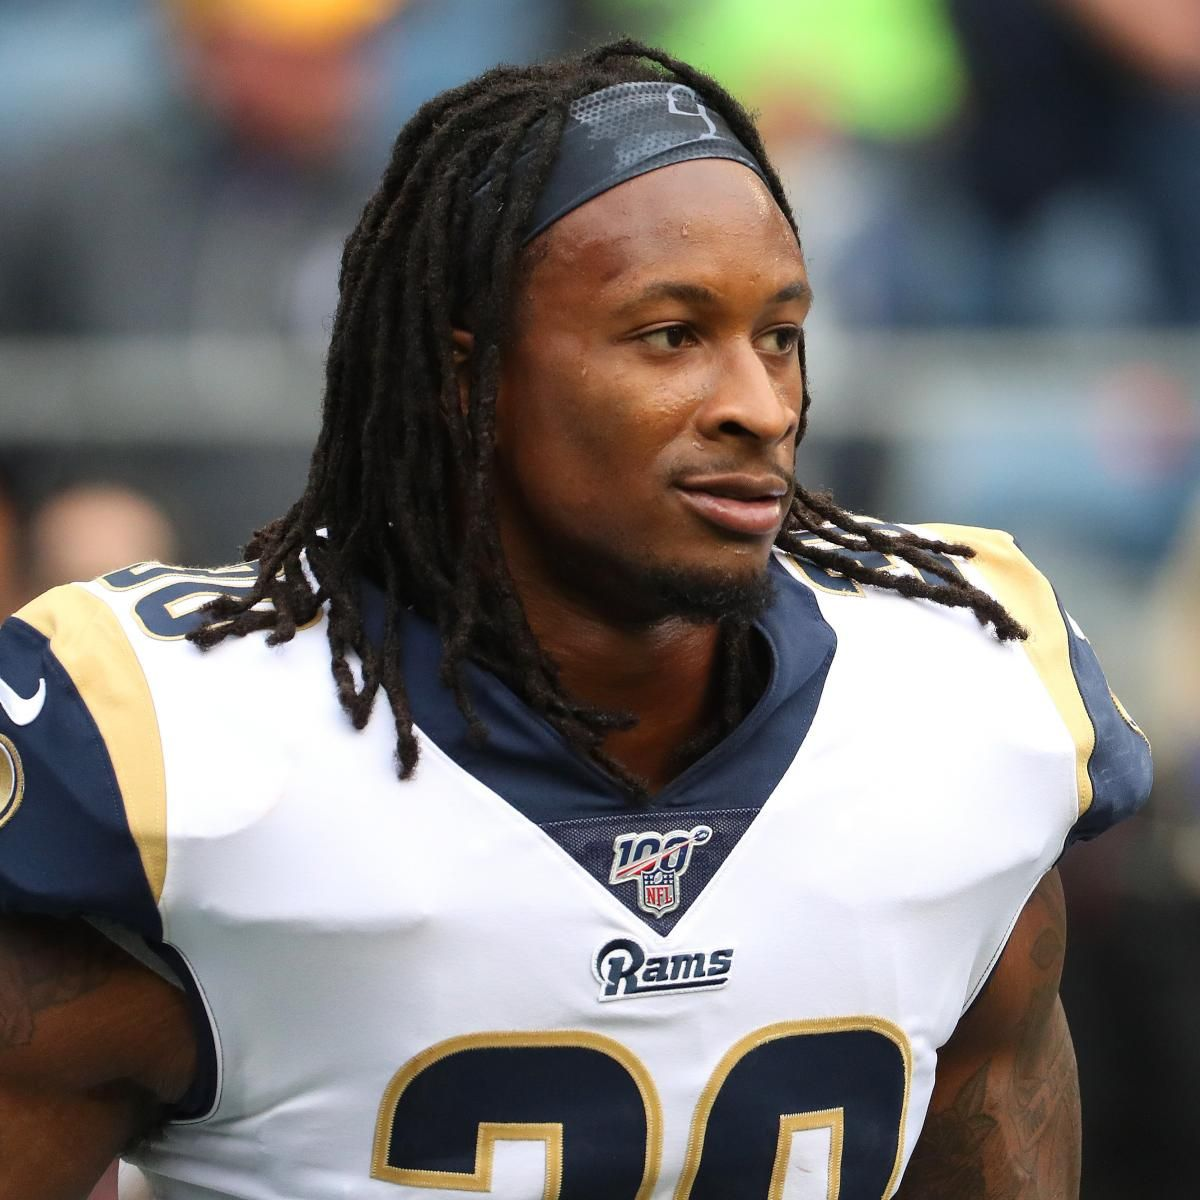 Look Rams Todd Gurley Mocks Ncaa With Not Concerned About Athletes Shirt Todd Gurley Athlete Mocking